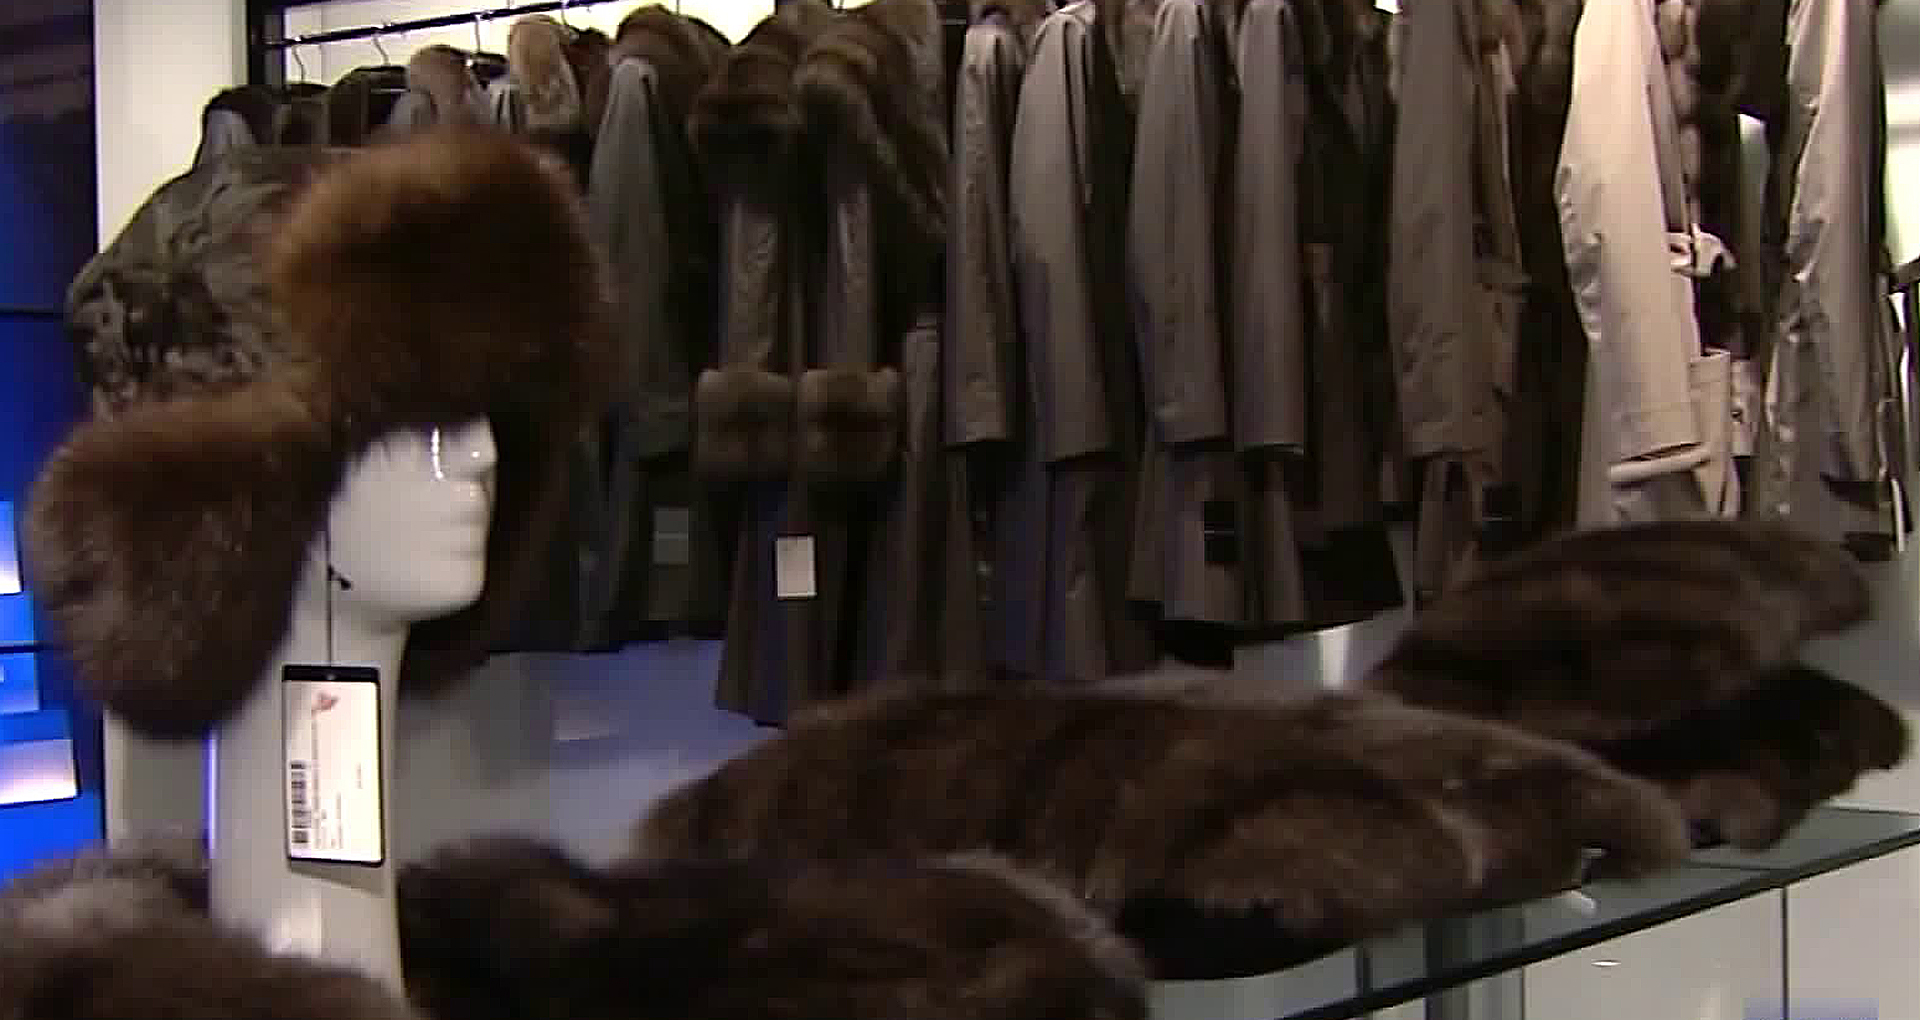 The Los Angeles City Council is expected to vote Tuesday on a plan to forbid the sale of fur products. (Credit: KTLA)